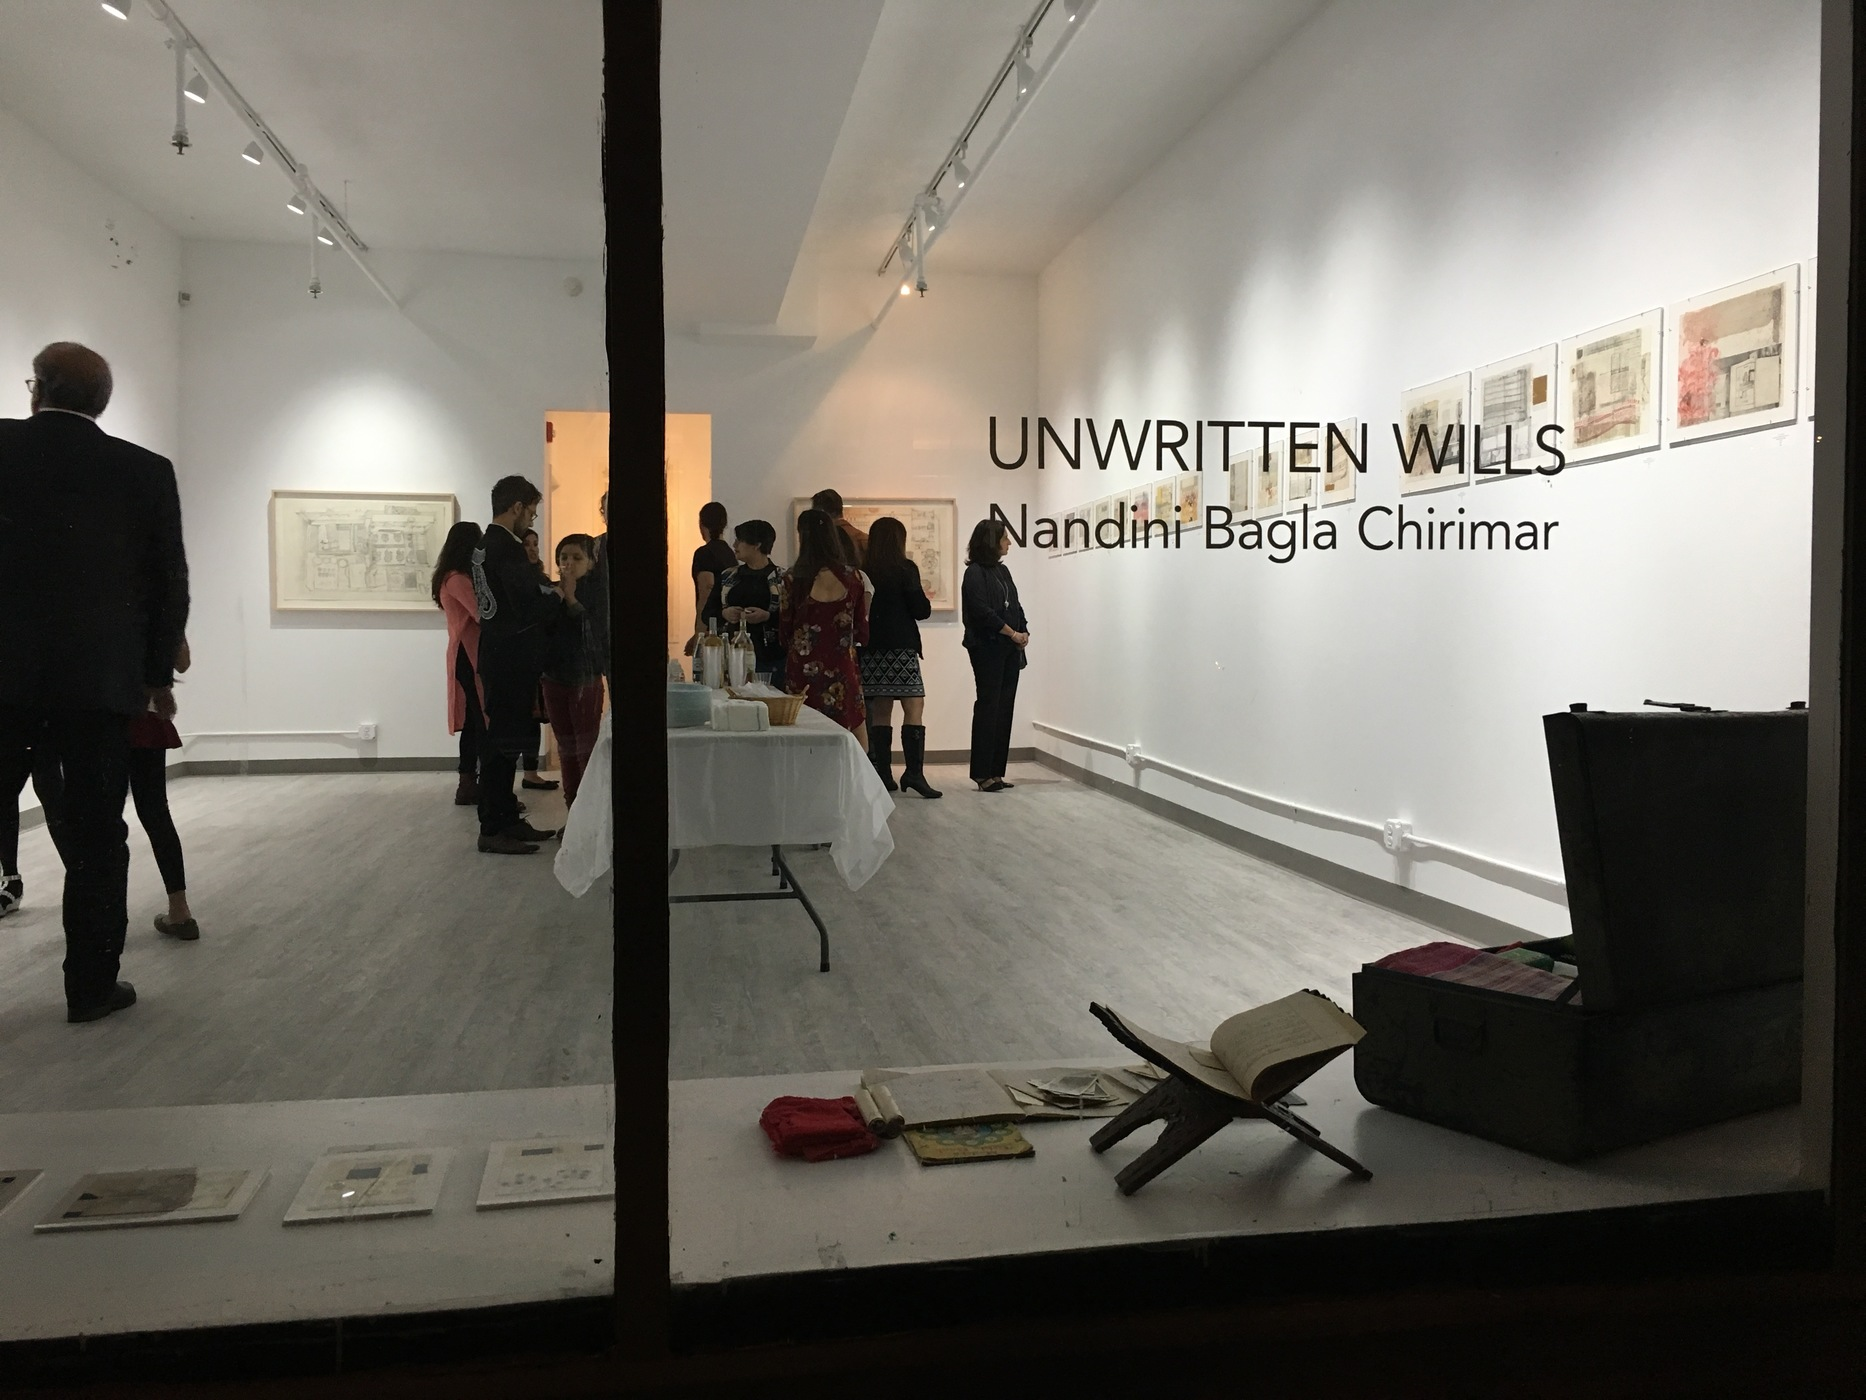 Unwritten Wills Exhibit  Unwritten Wills Exhibit